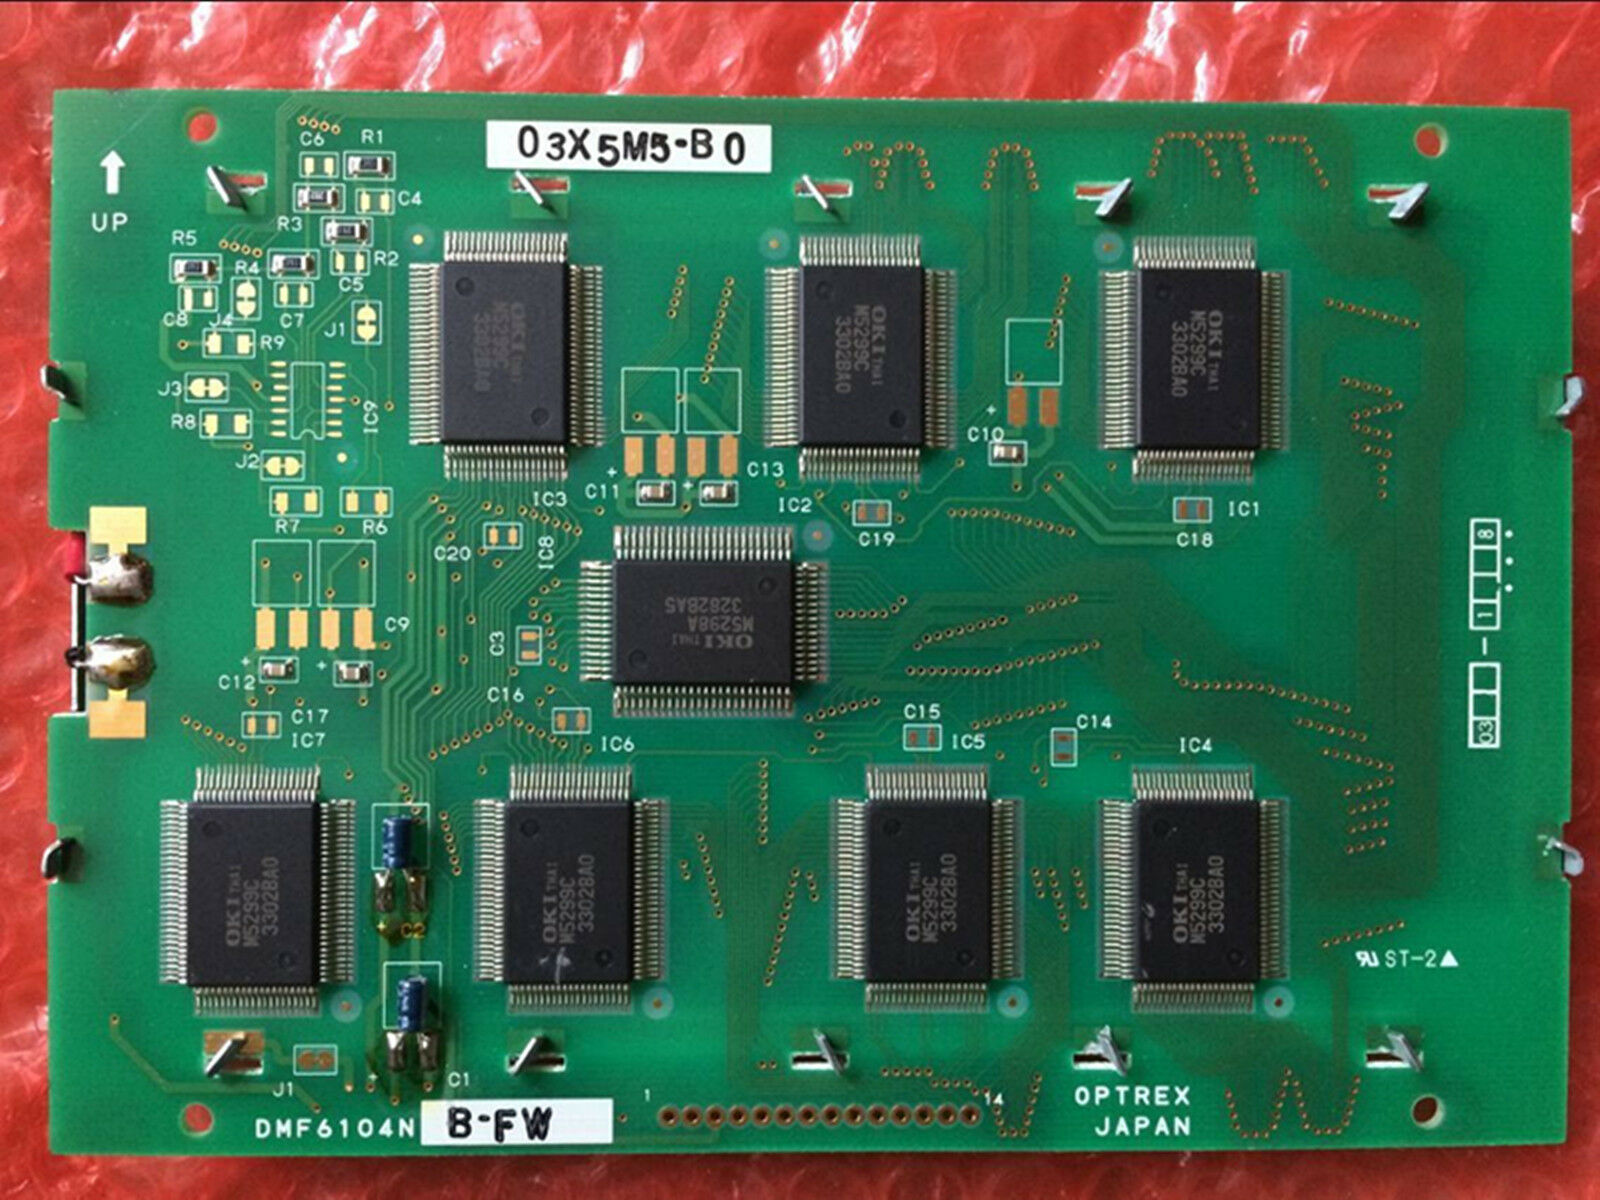 1PC Display DMF6104N 5.3 inch 256*128 STN-LCD Panel for OPTREX